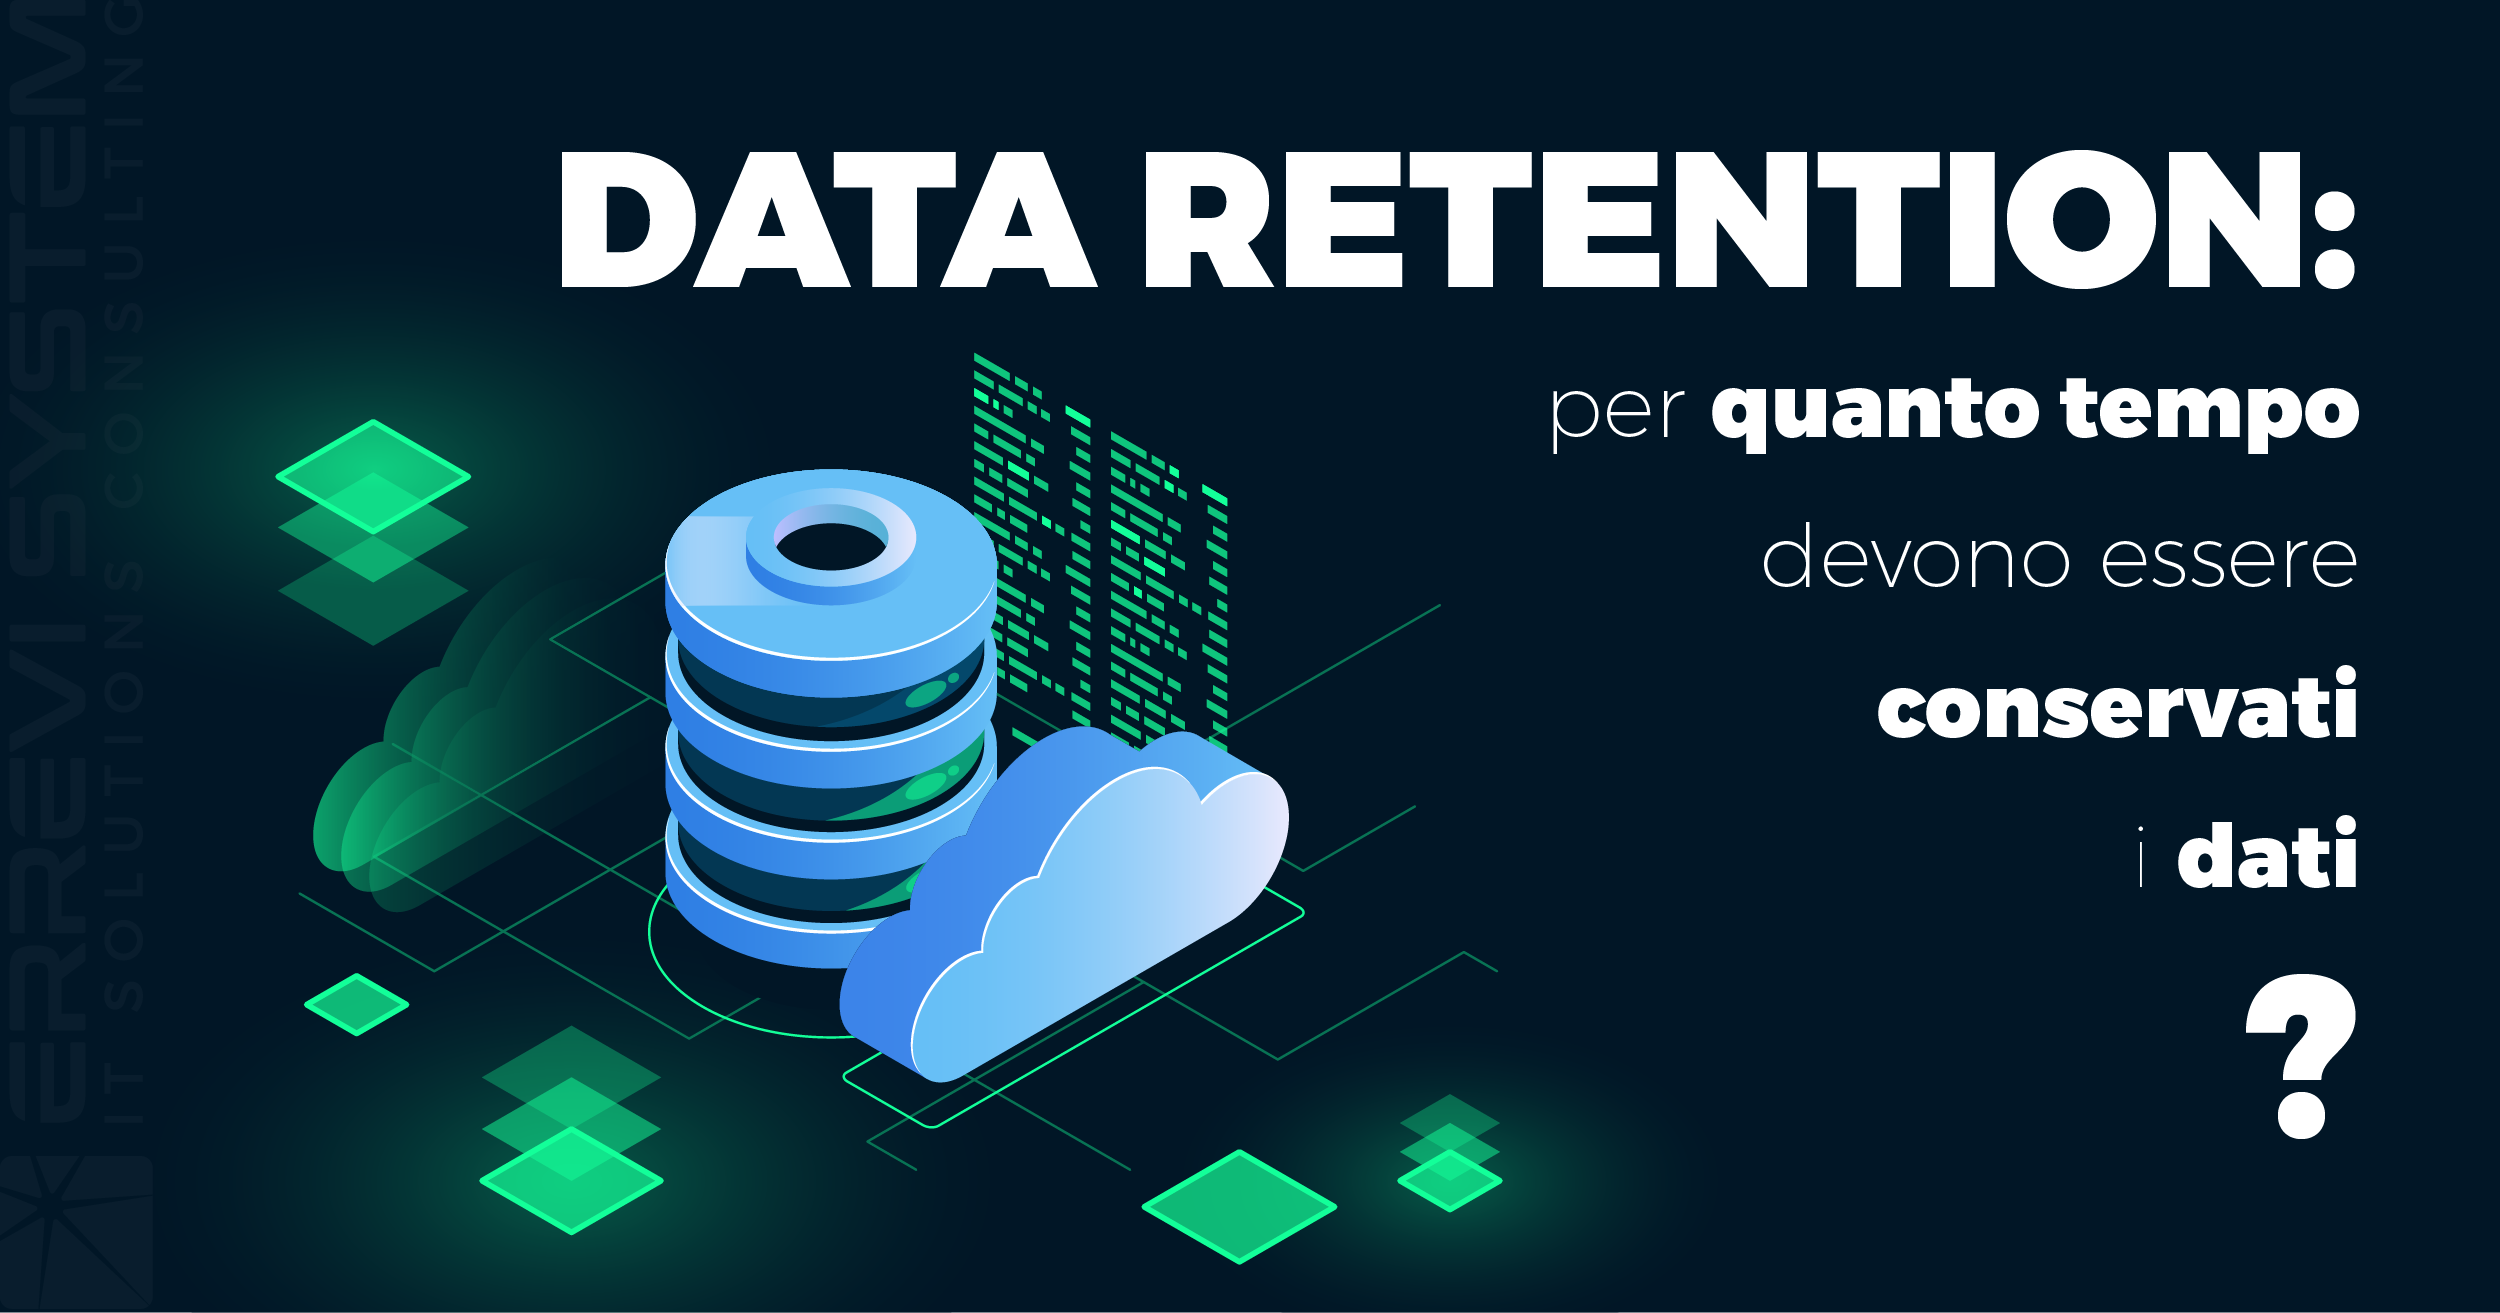 Data Retention: per quanto tempo devono essere conservati i dati?